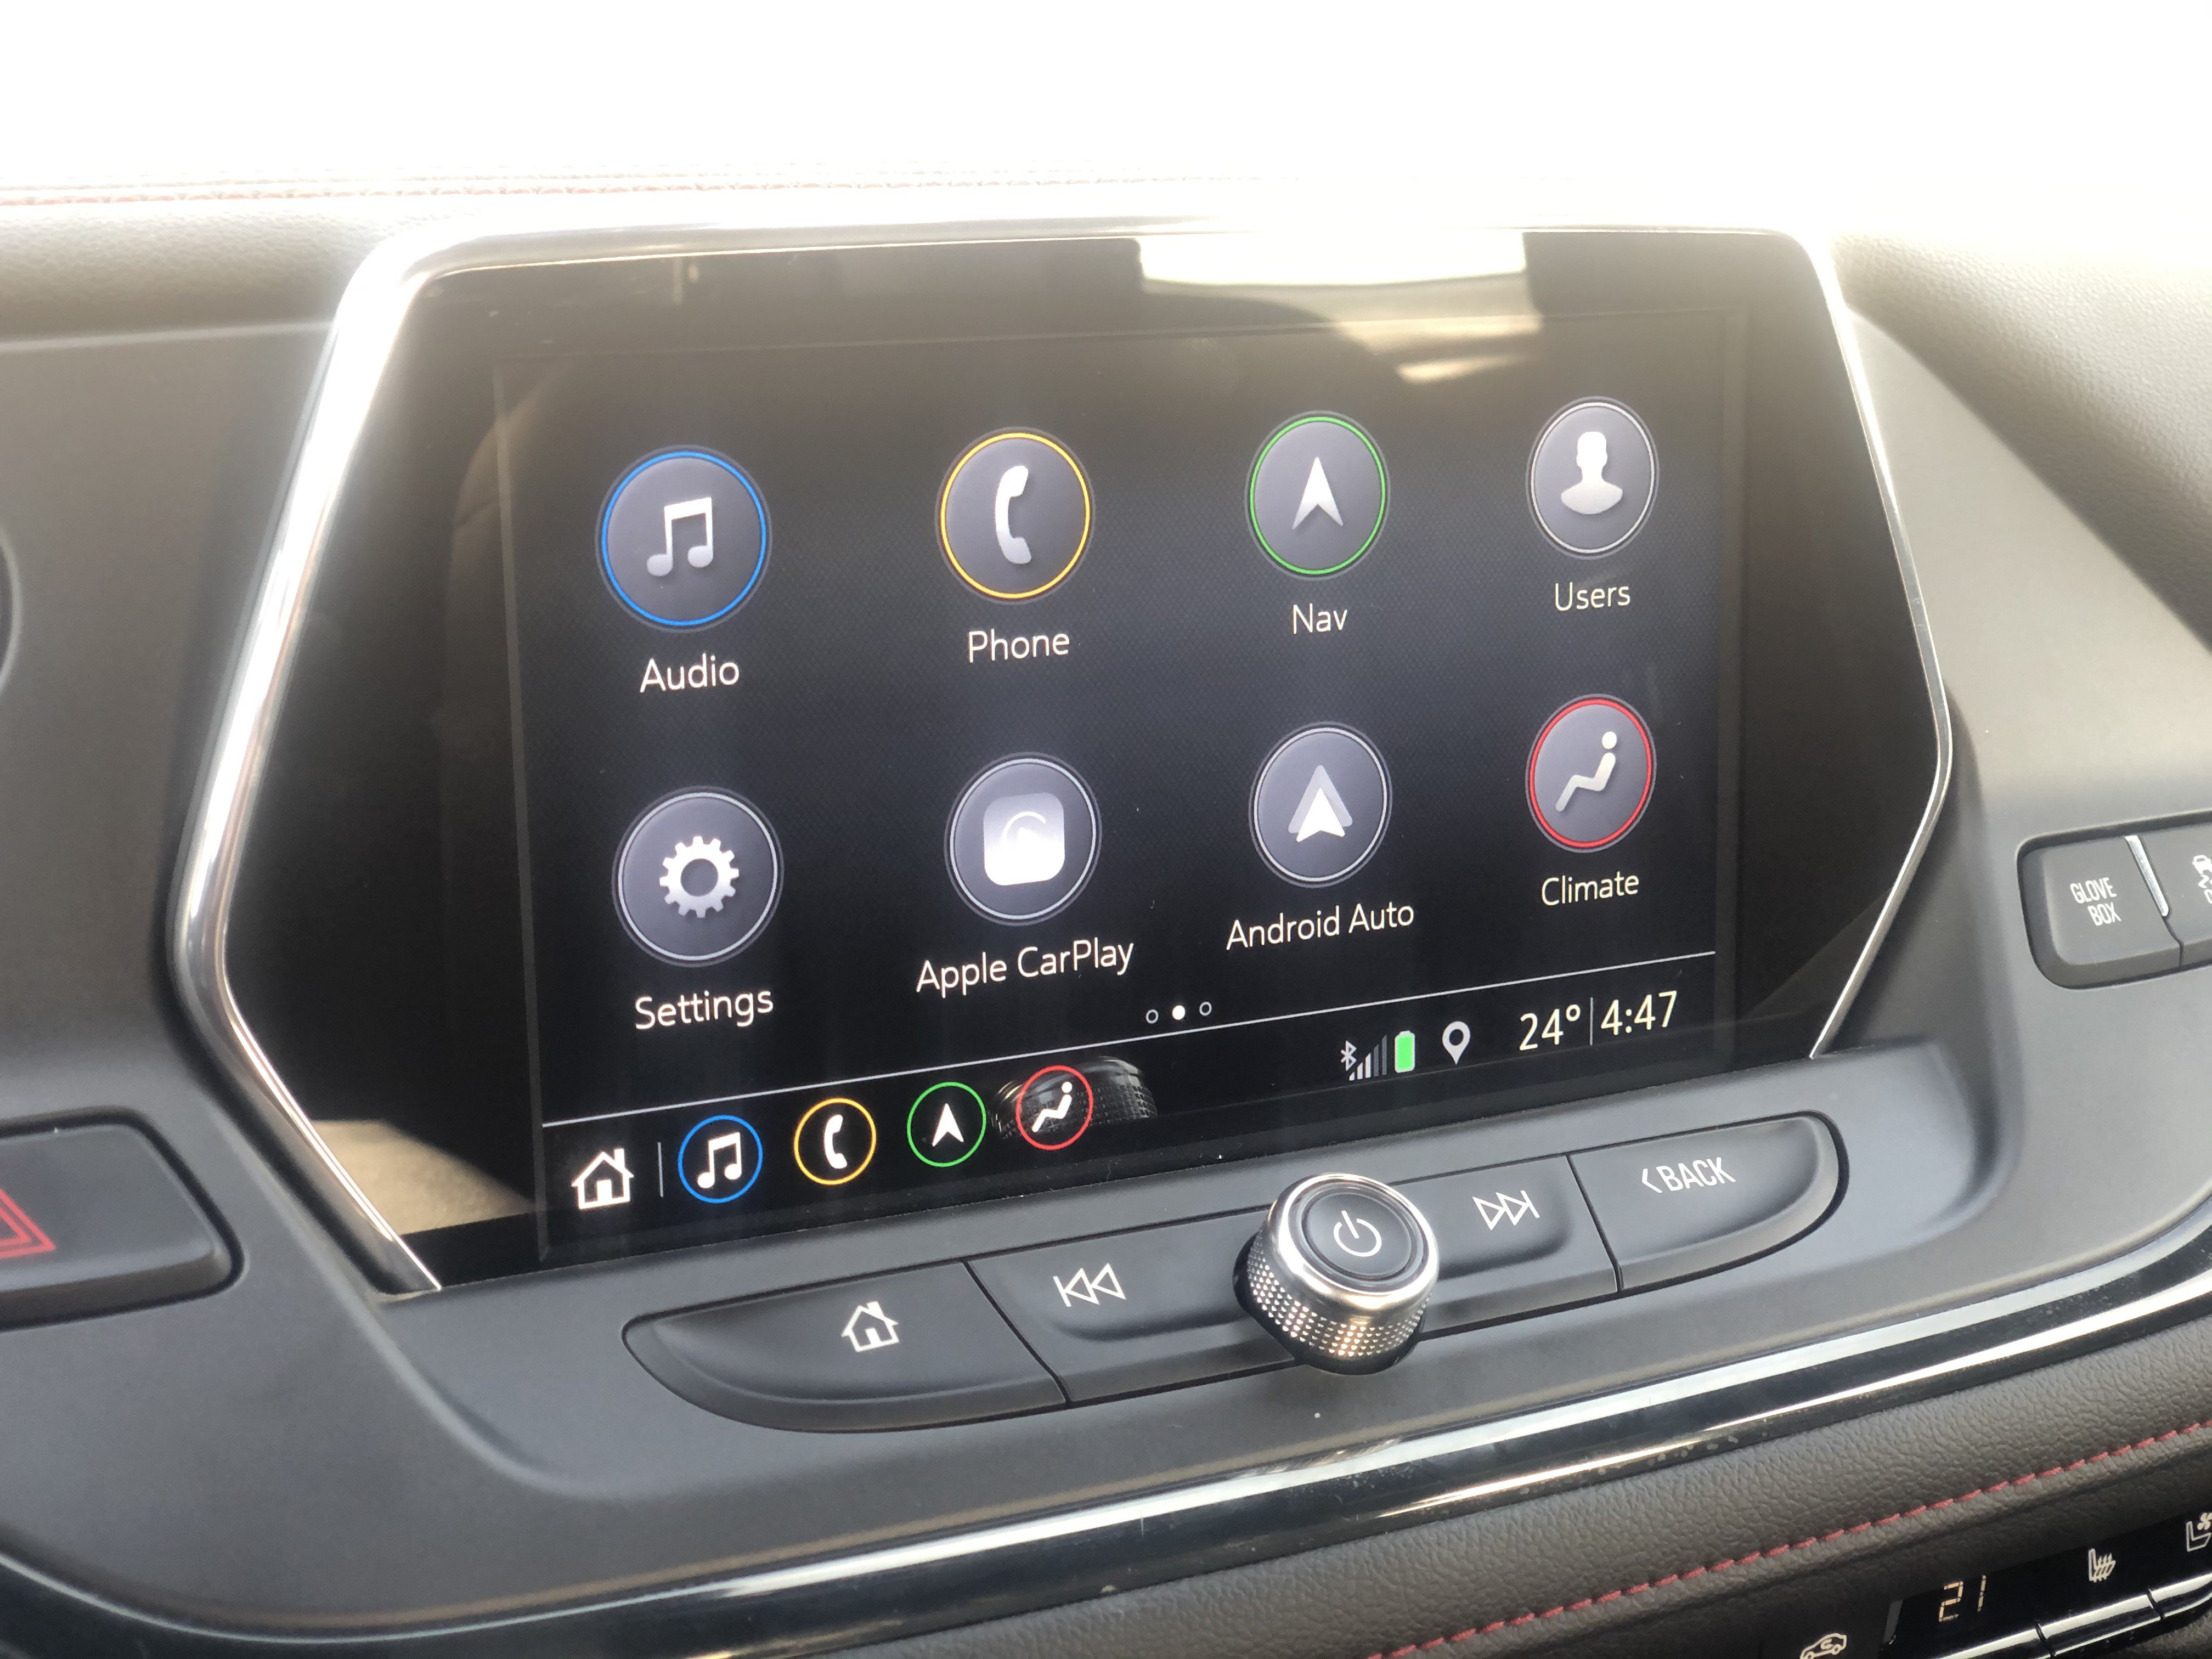 Chevrolet Blazer 2019 eight-inch color touch screen, called Infotainment 3, is filled with connectivity features